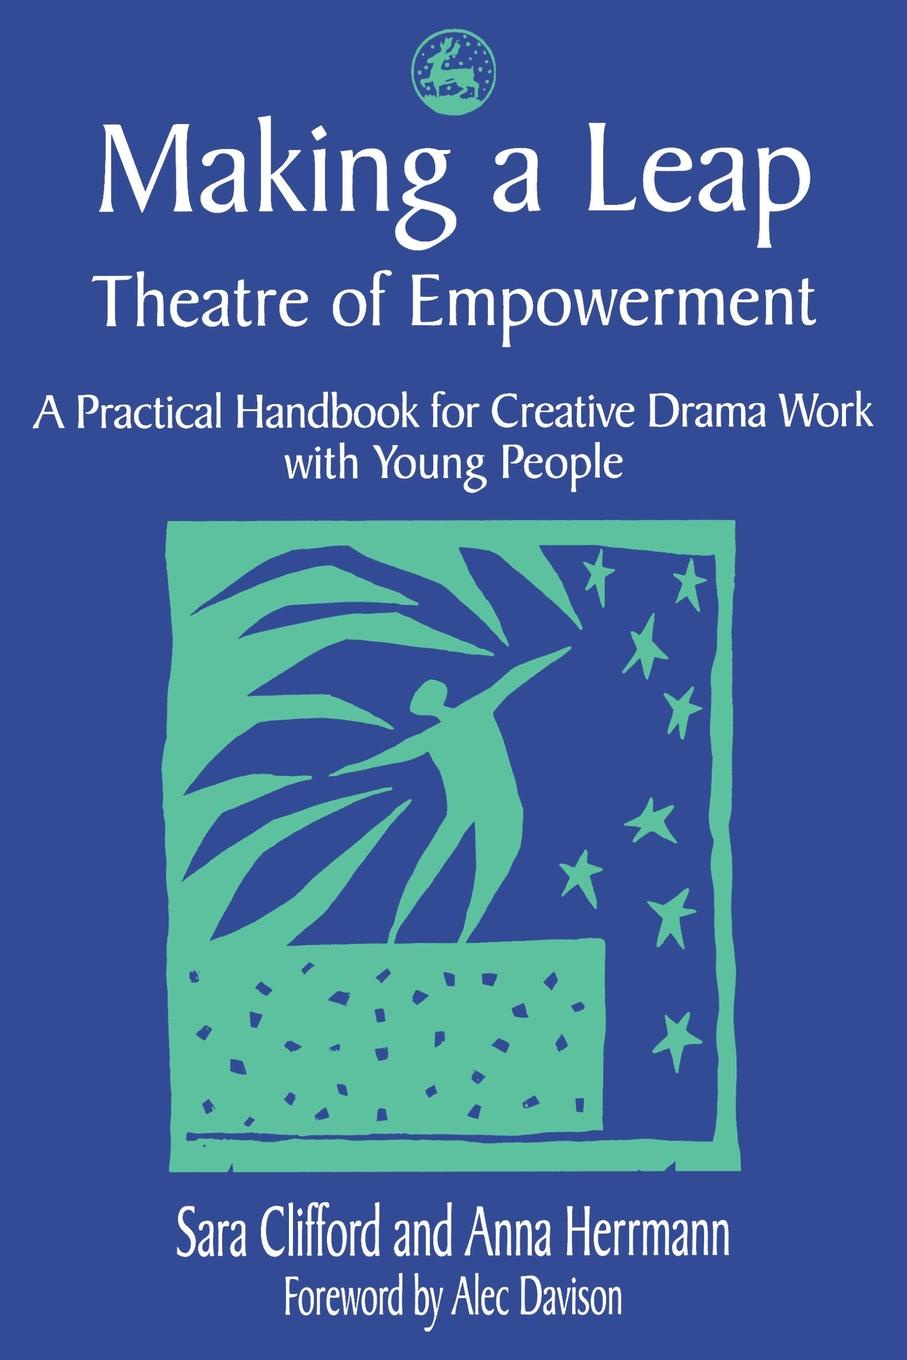 Sara Clifford, Anna Herrmann Making a Leap. Theatre of Empowerment: A Practical Handbook for Drama and Work with Young People